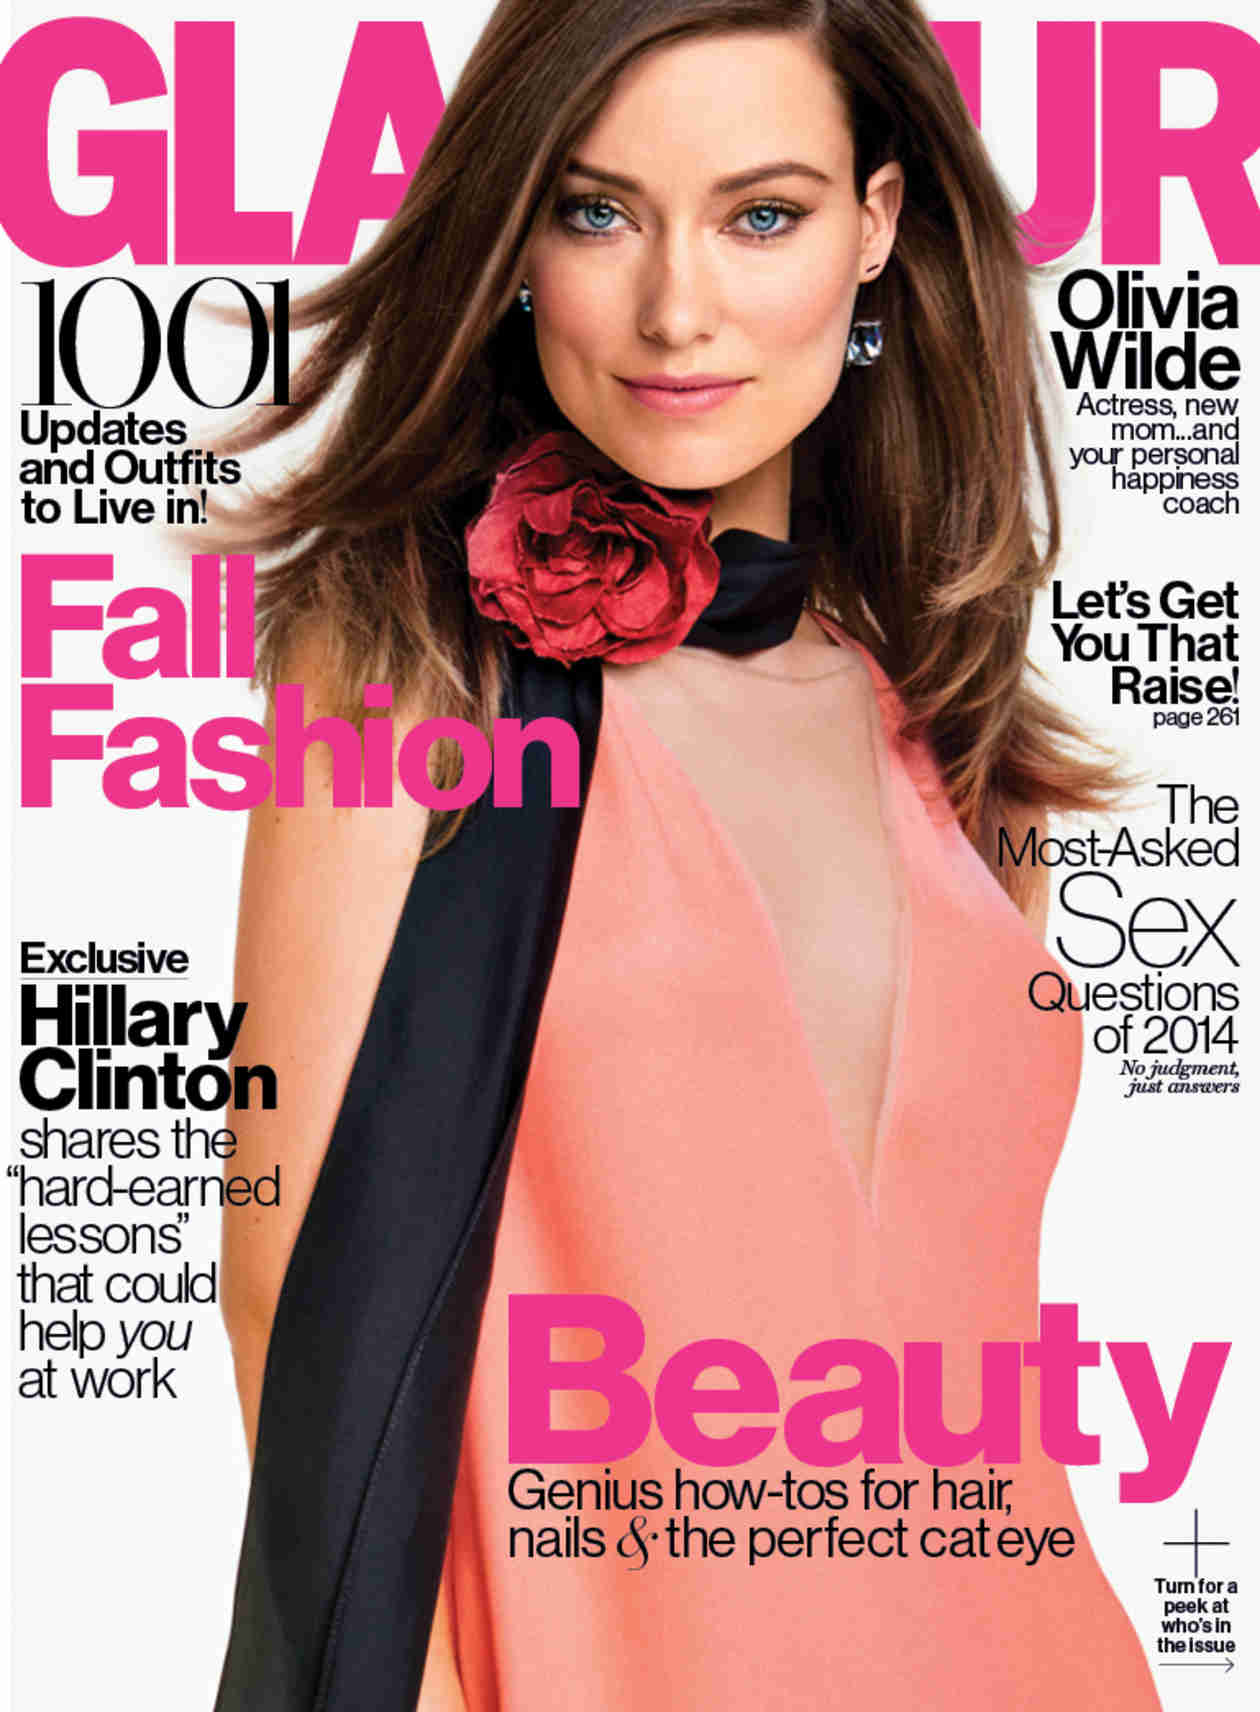 Olivia Wilde Breastfeeds Son For Glamour Photoshoot (VIDEO)